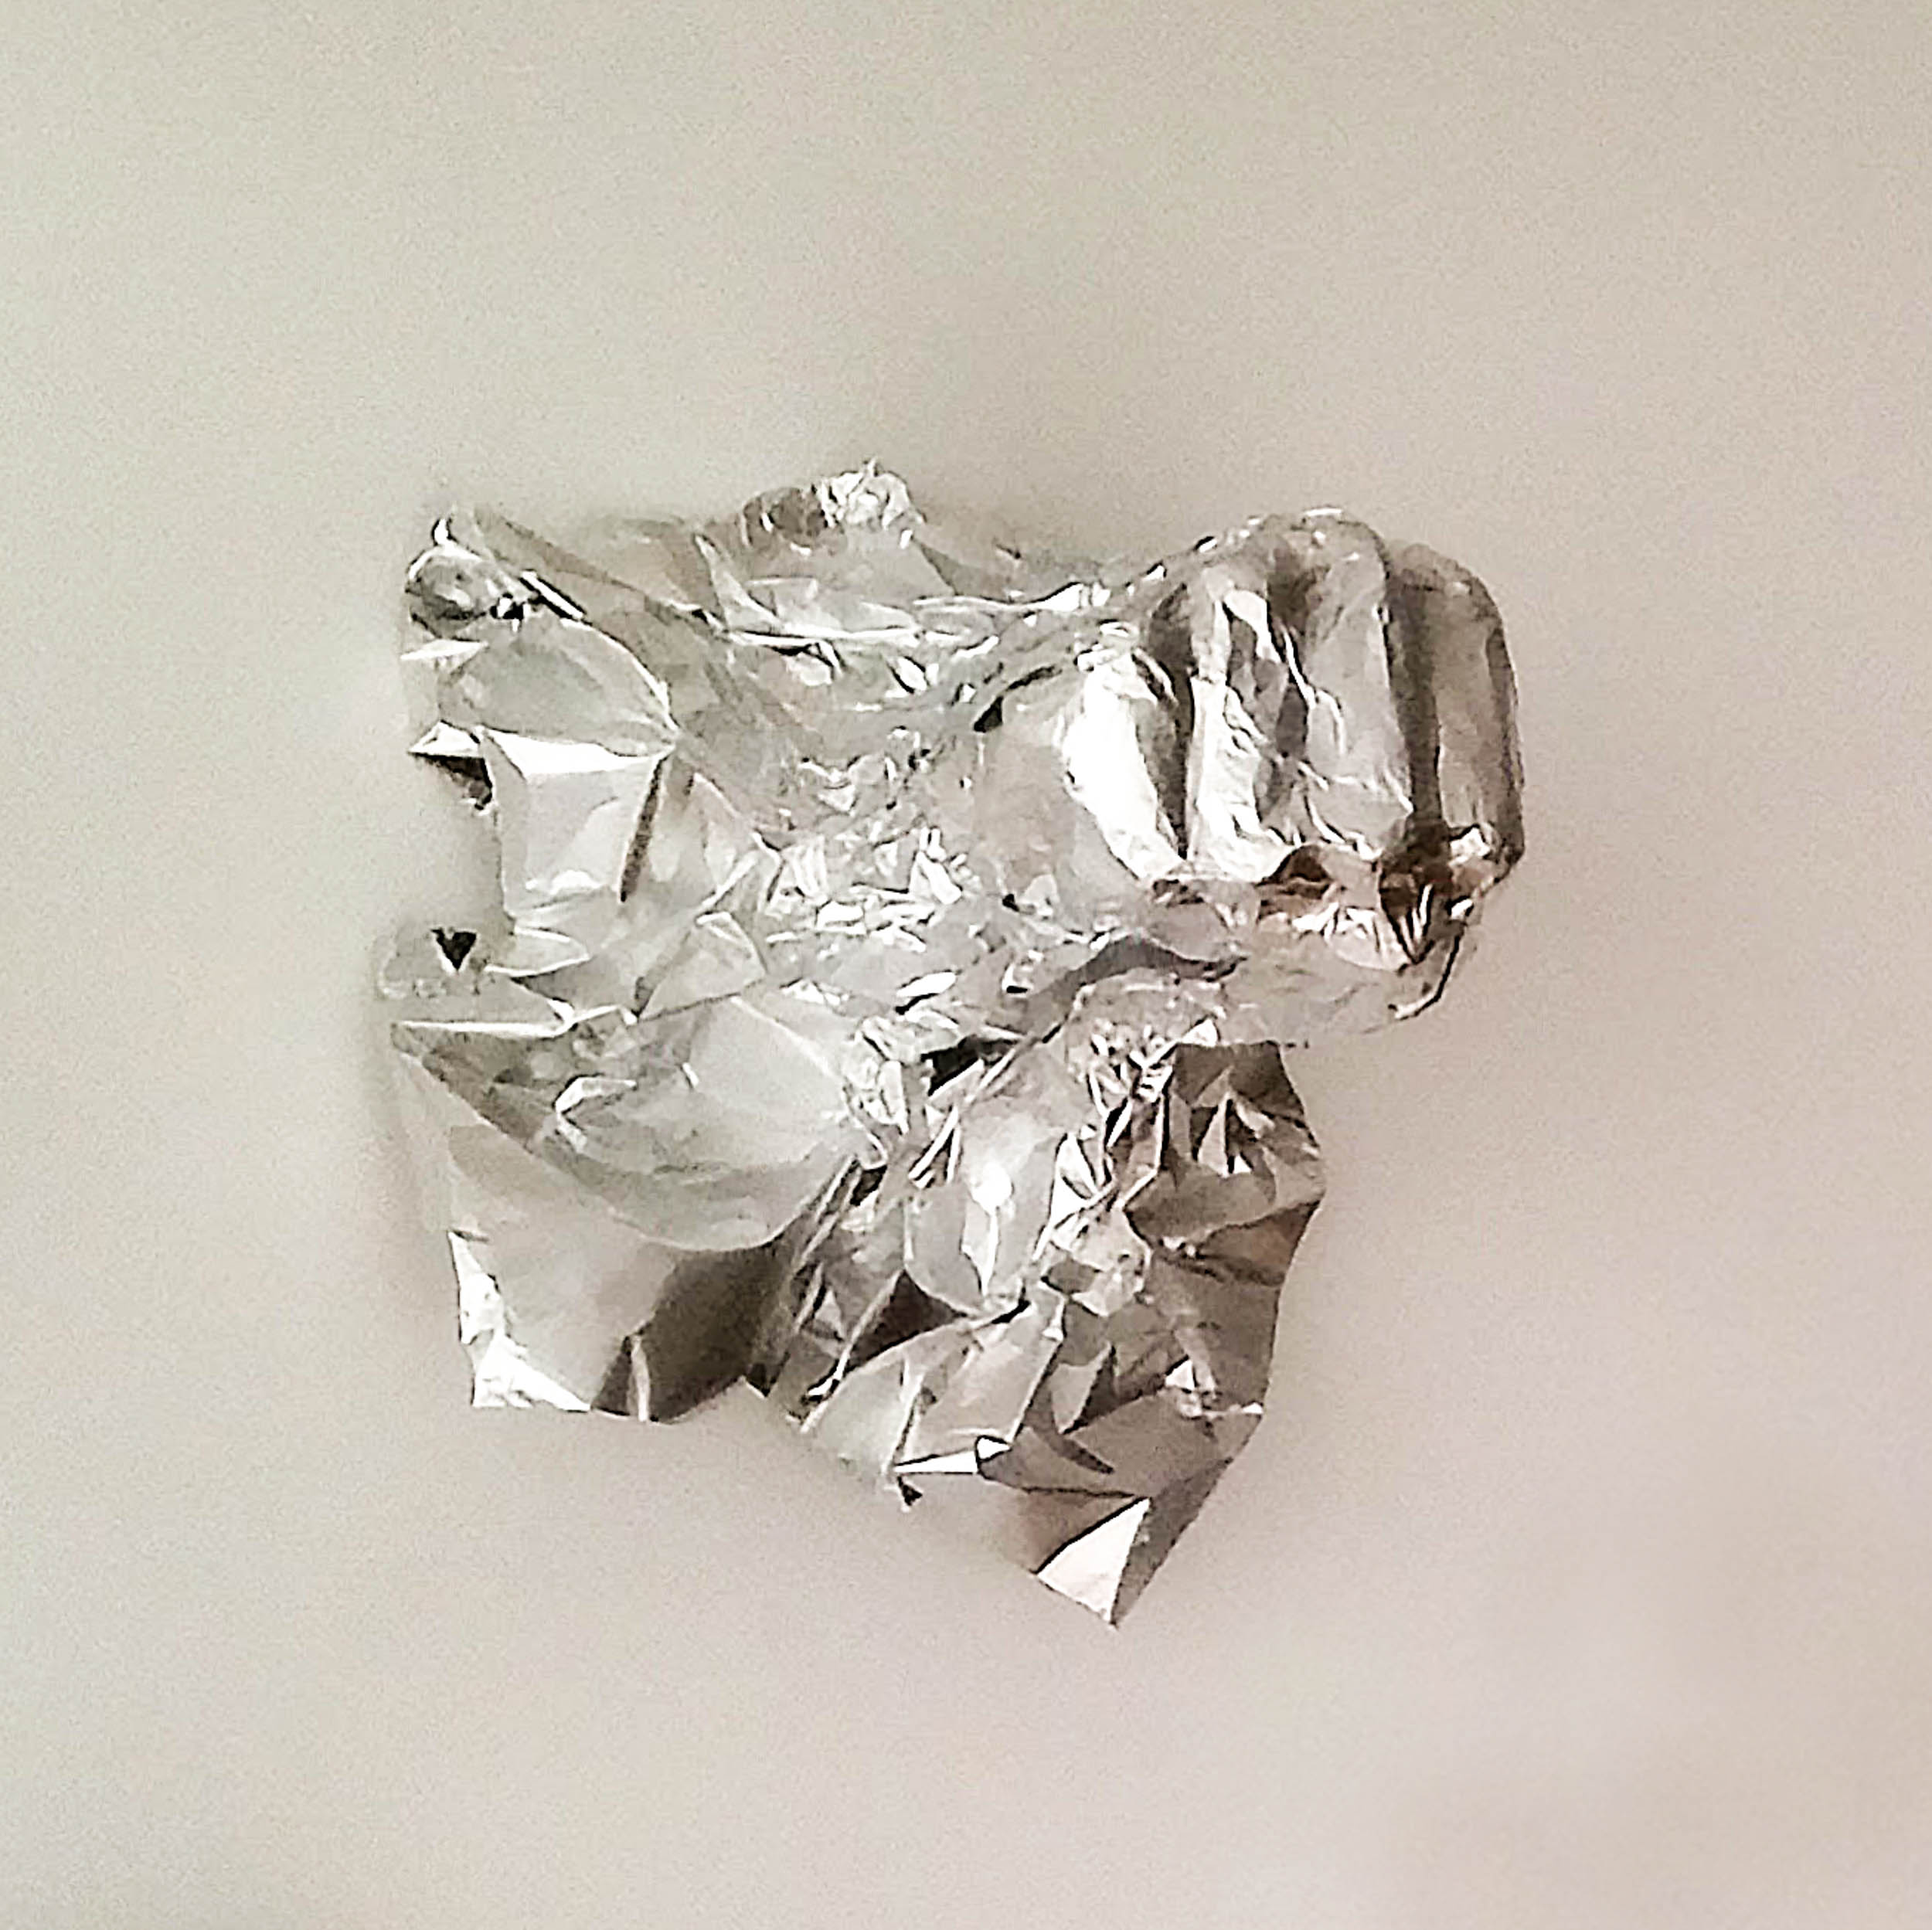 Aluminum foil molding of the artist's fist are displayed in the exhibition space.  New aluminium foil sheets are available to the public during performances. The visitors can then mold their own fist and add it to the «Wall of Resistance», creating a growing number of aluminum fists in the installation thus modifying its form.  (click Next to continue)